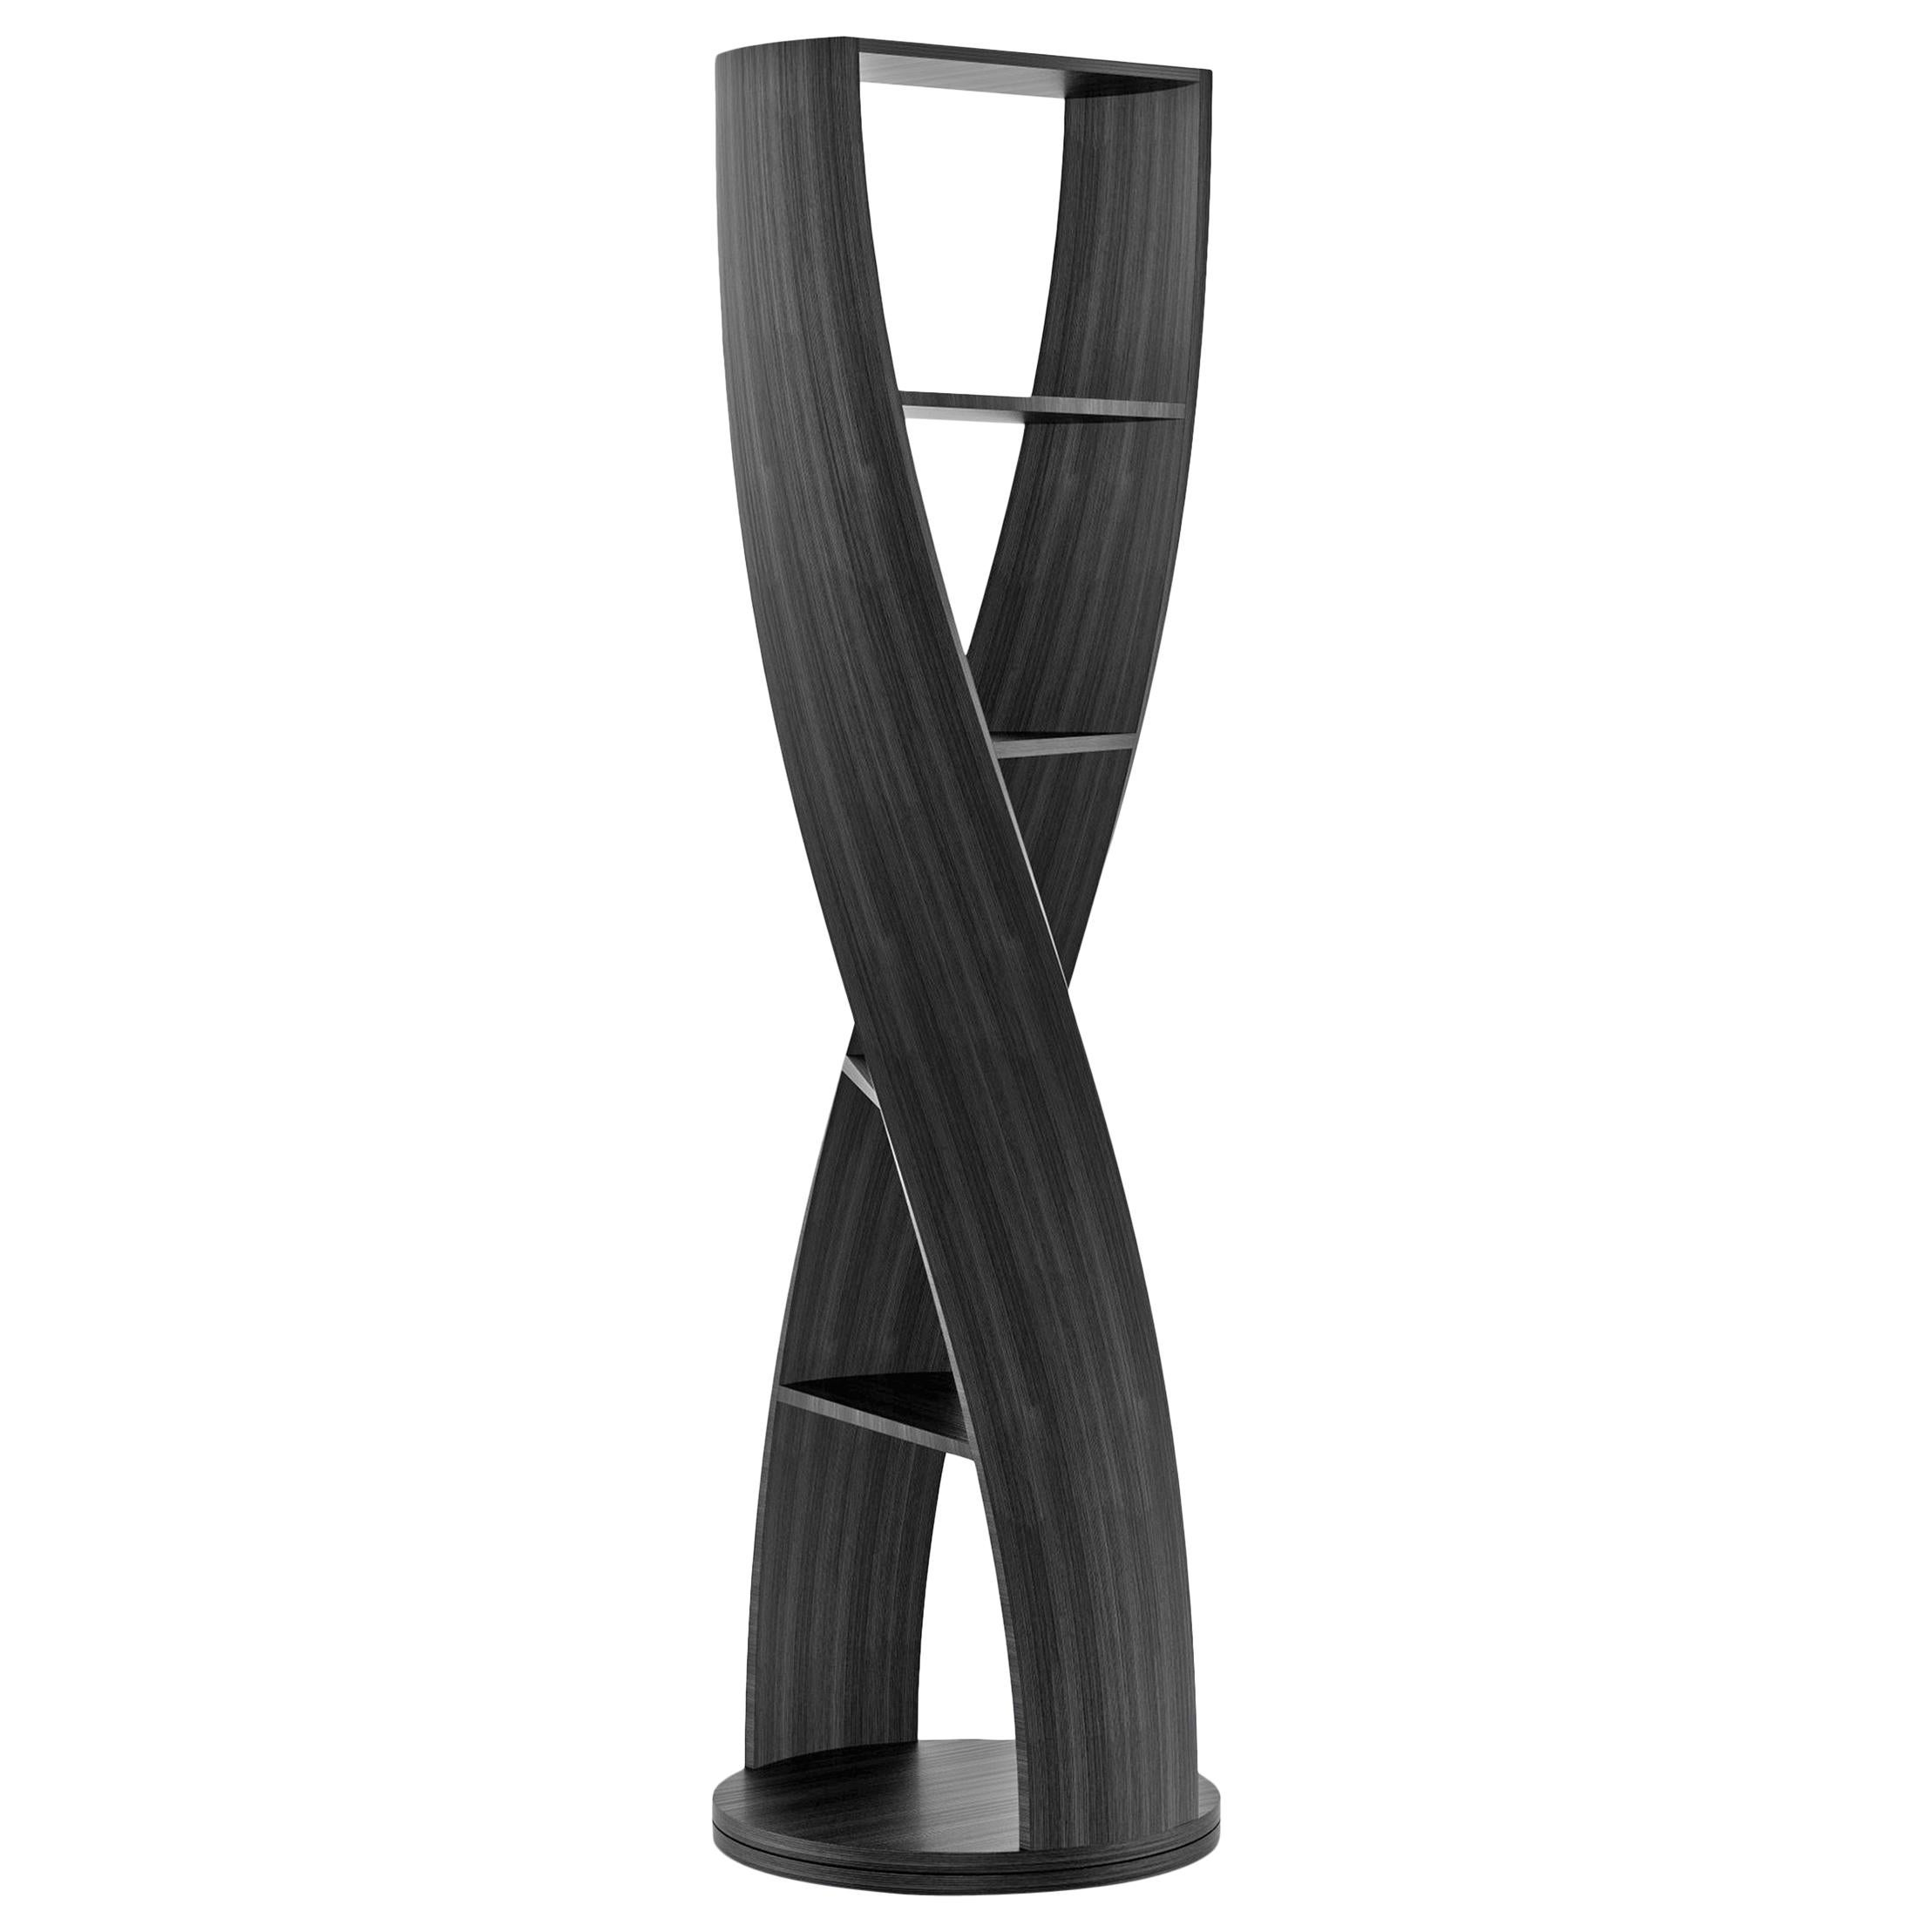 Black Wood Bookcase and Storage System Mini MYDNA Collection by Joel Escalona